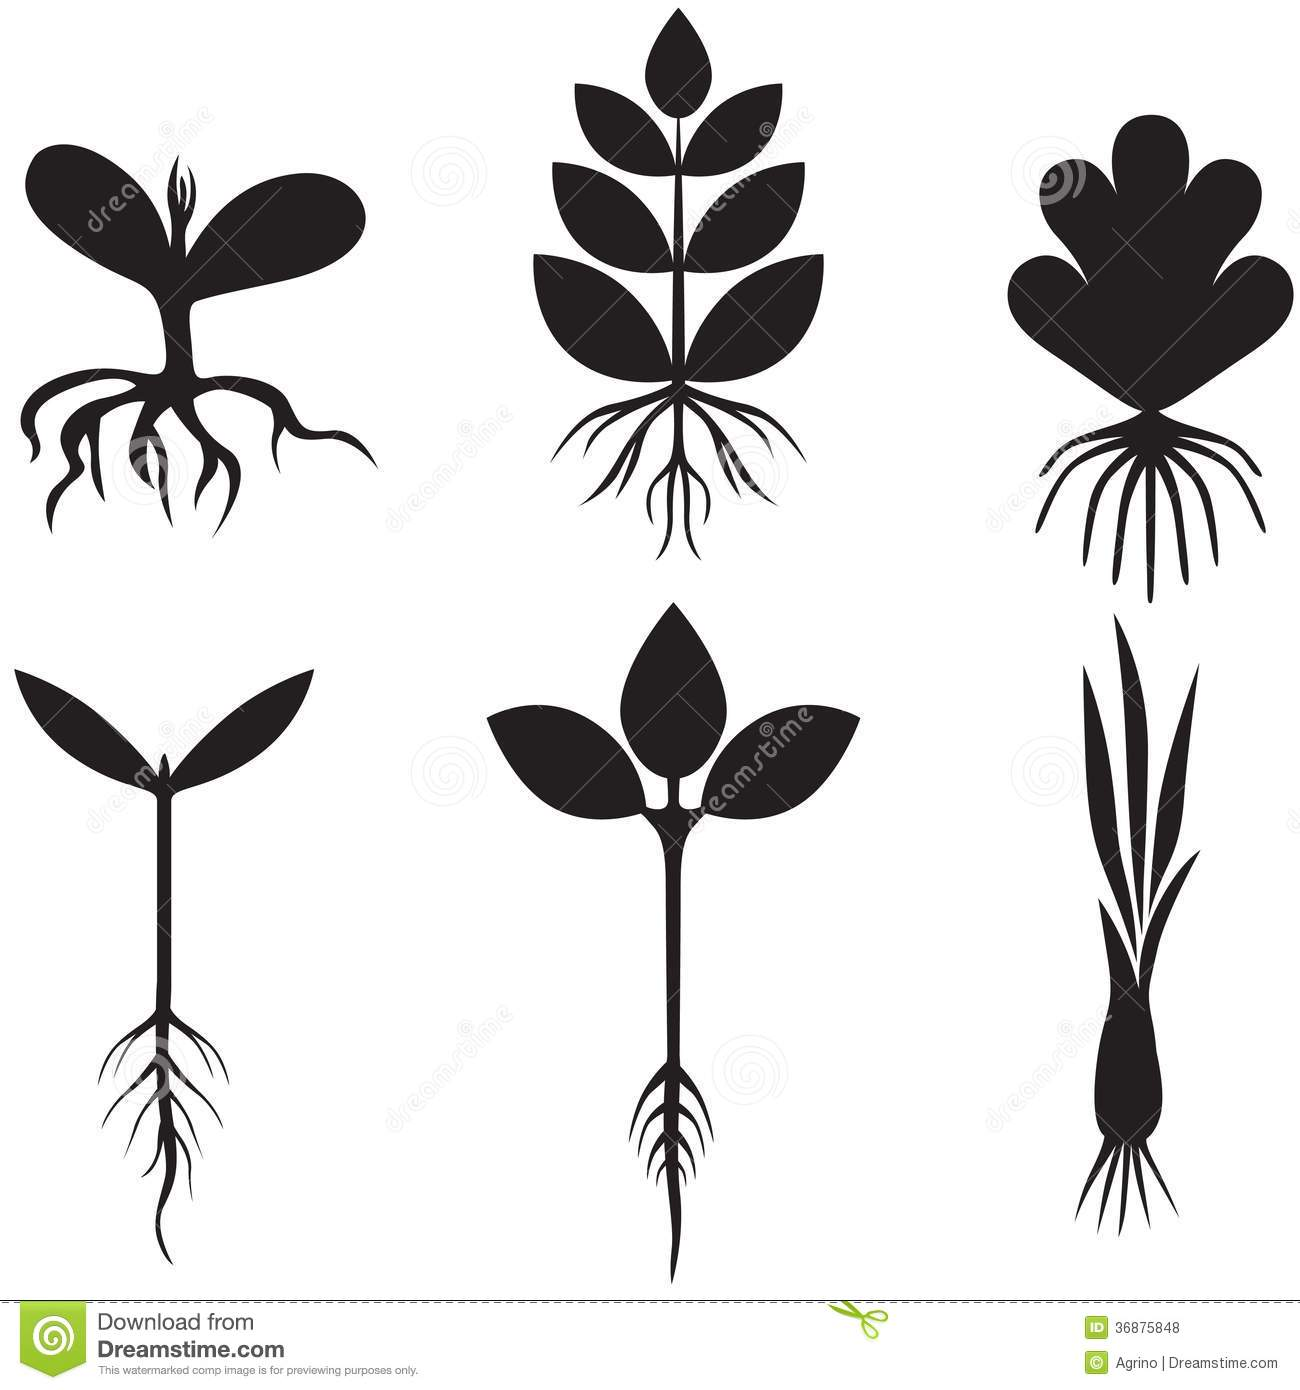 Silhouette sprout set stock vector. Image of spring ...